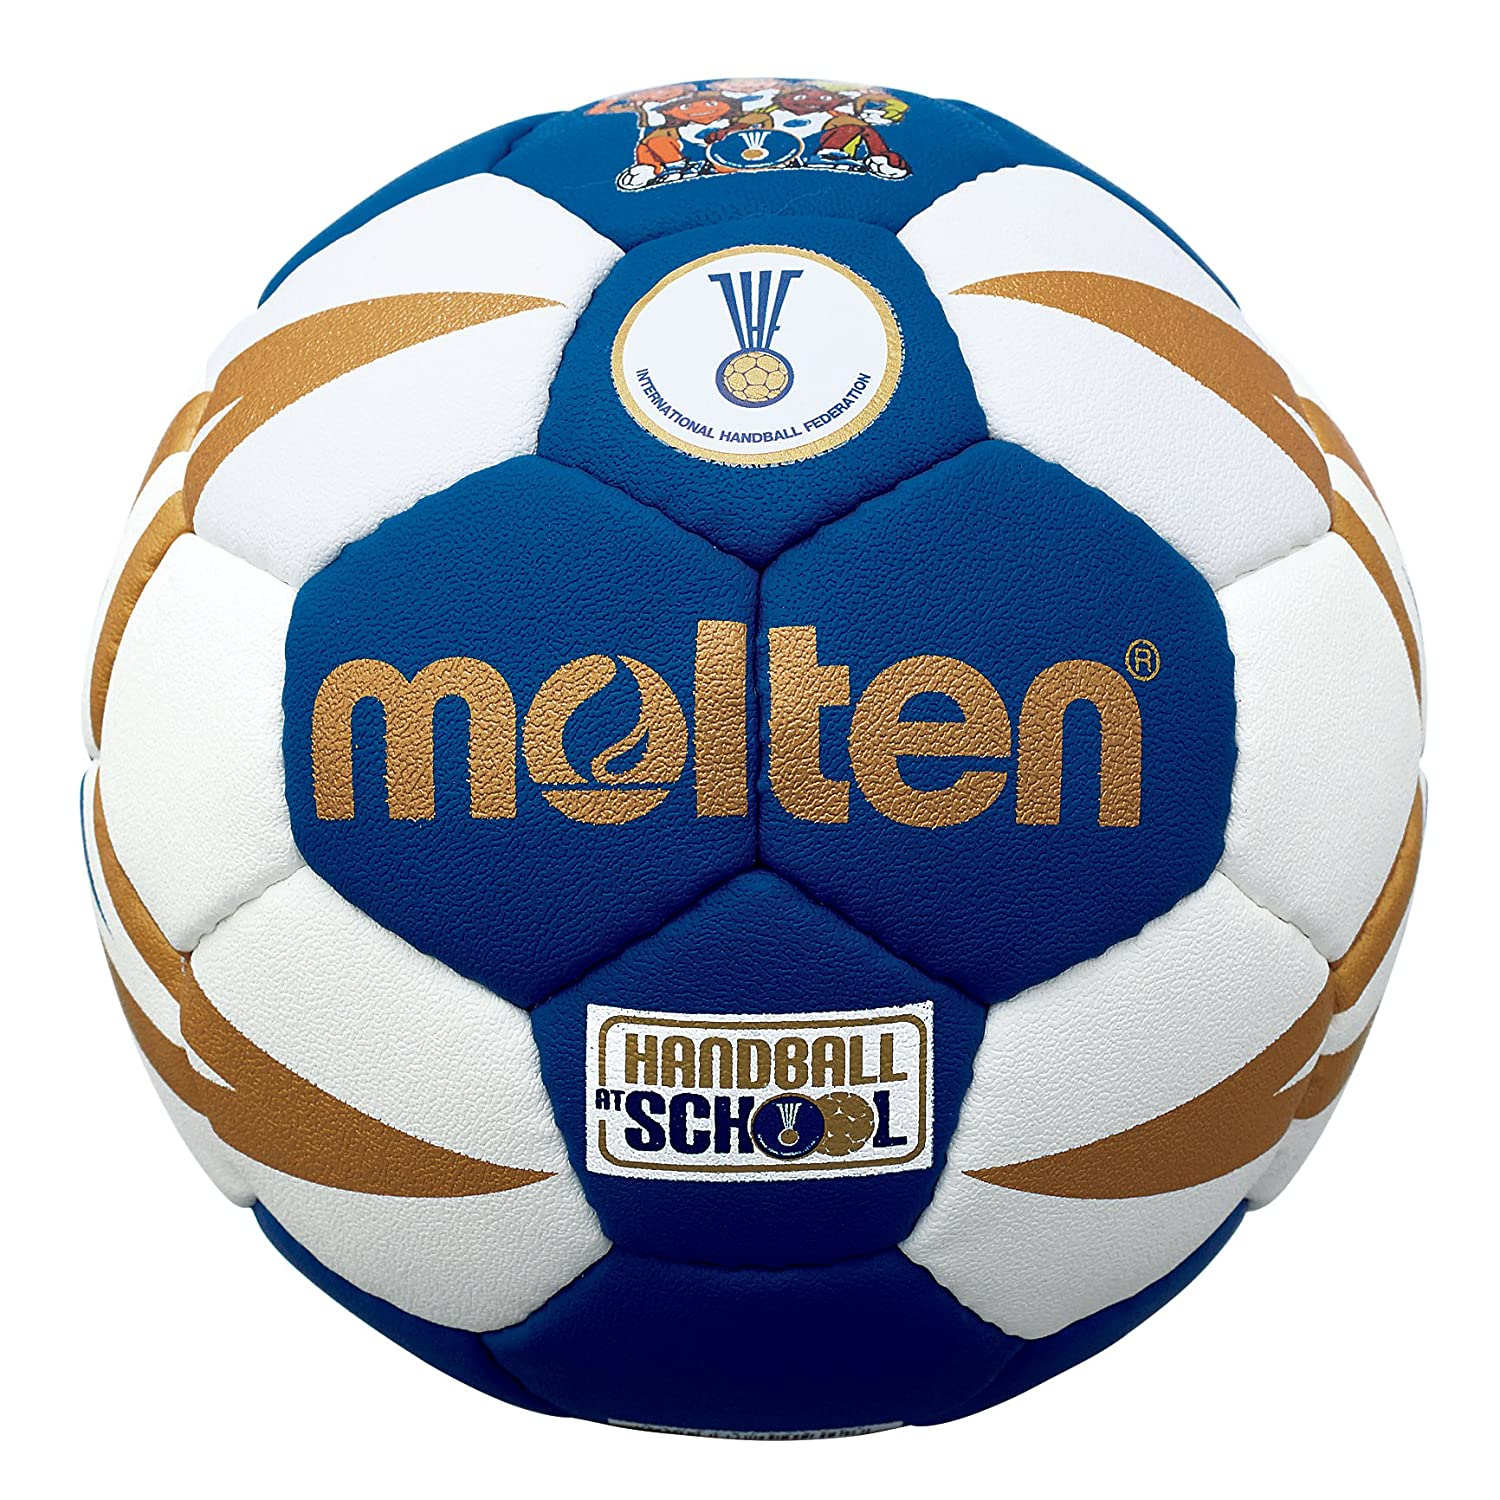 TALLA n/a. MOLTEN IHF Approved Club/School - Pelota de Balonmano, Color